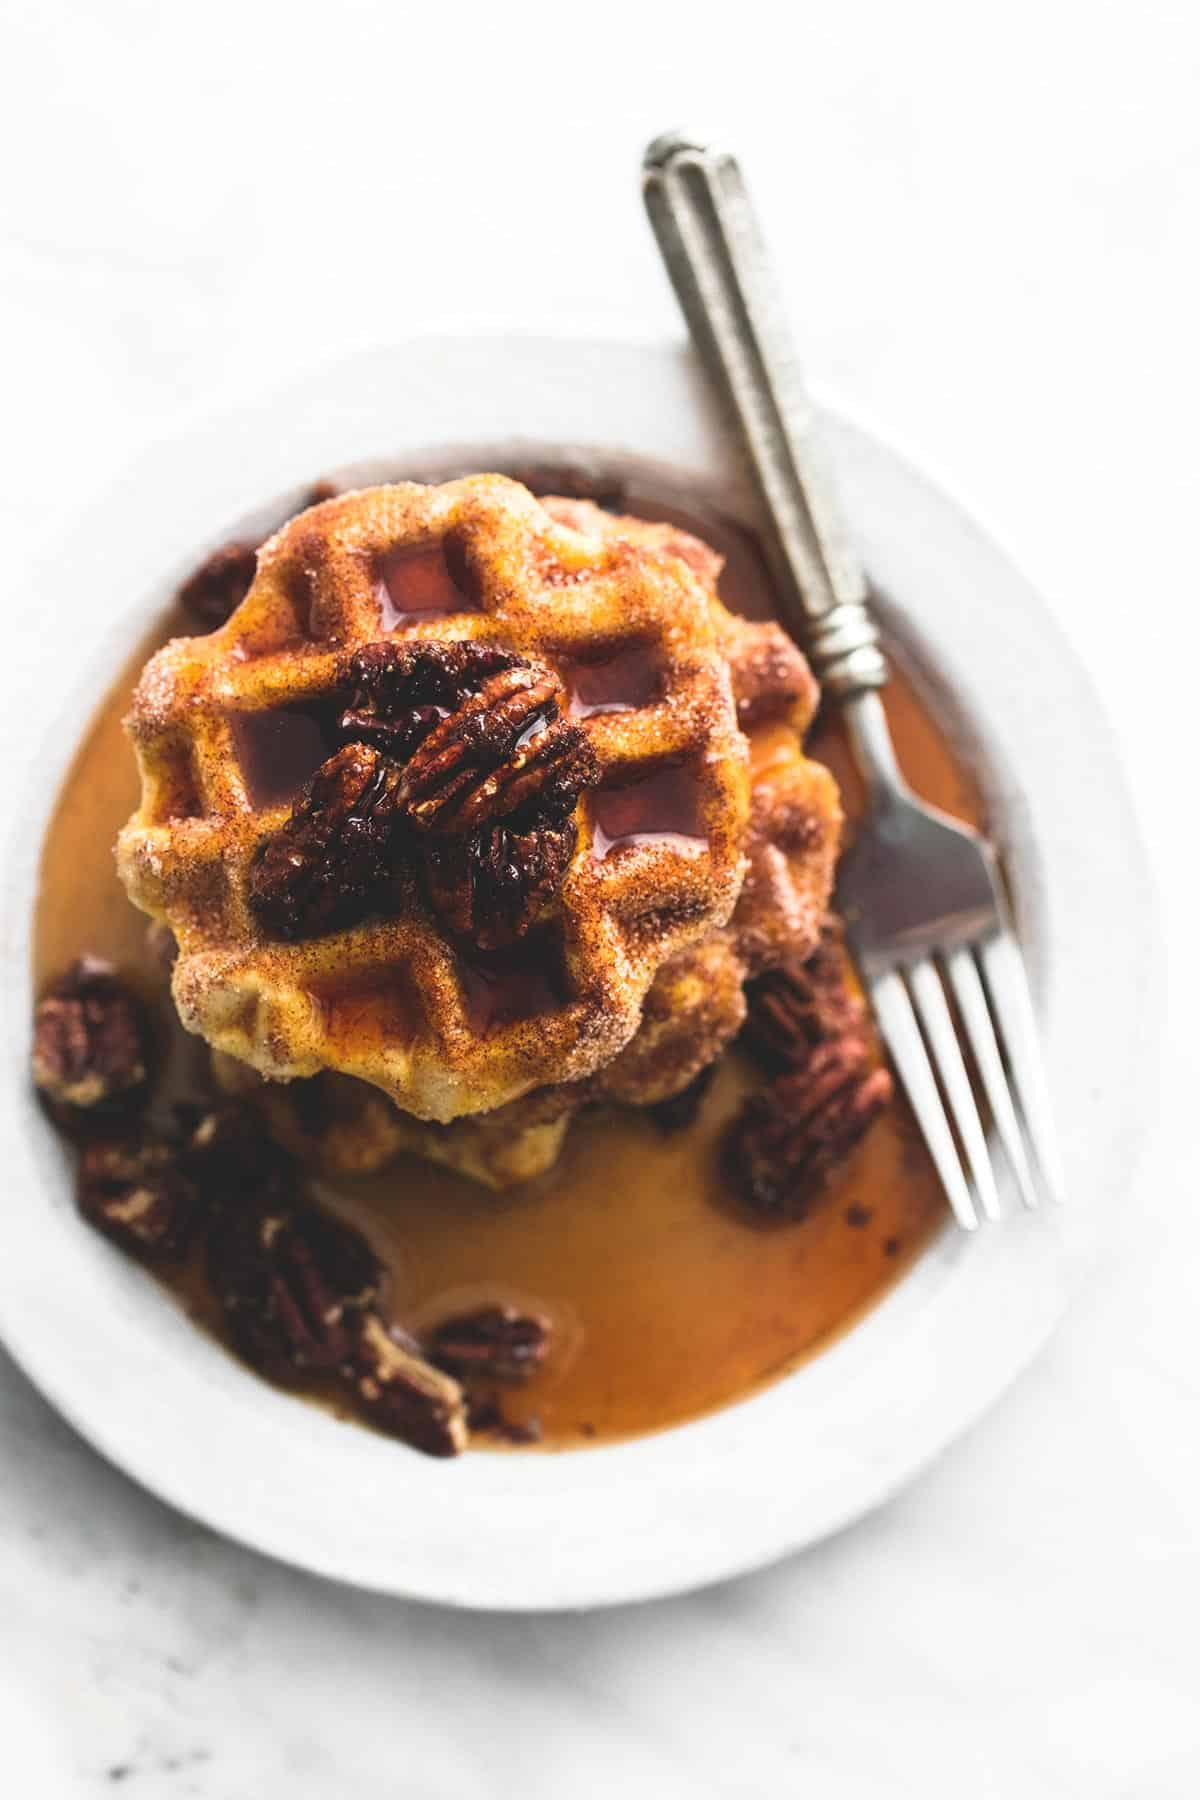 Cinnamon Sugar Biscuit Waffles (4 ingredients) | lecremedelacrumb.com